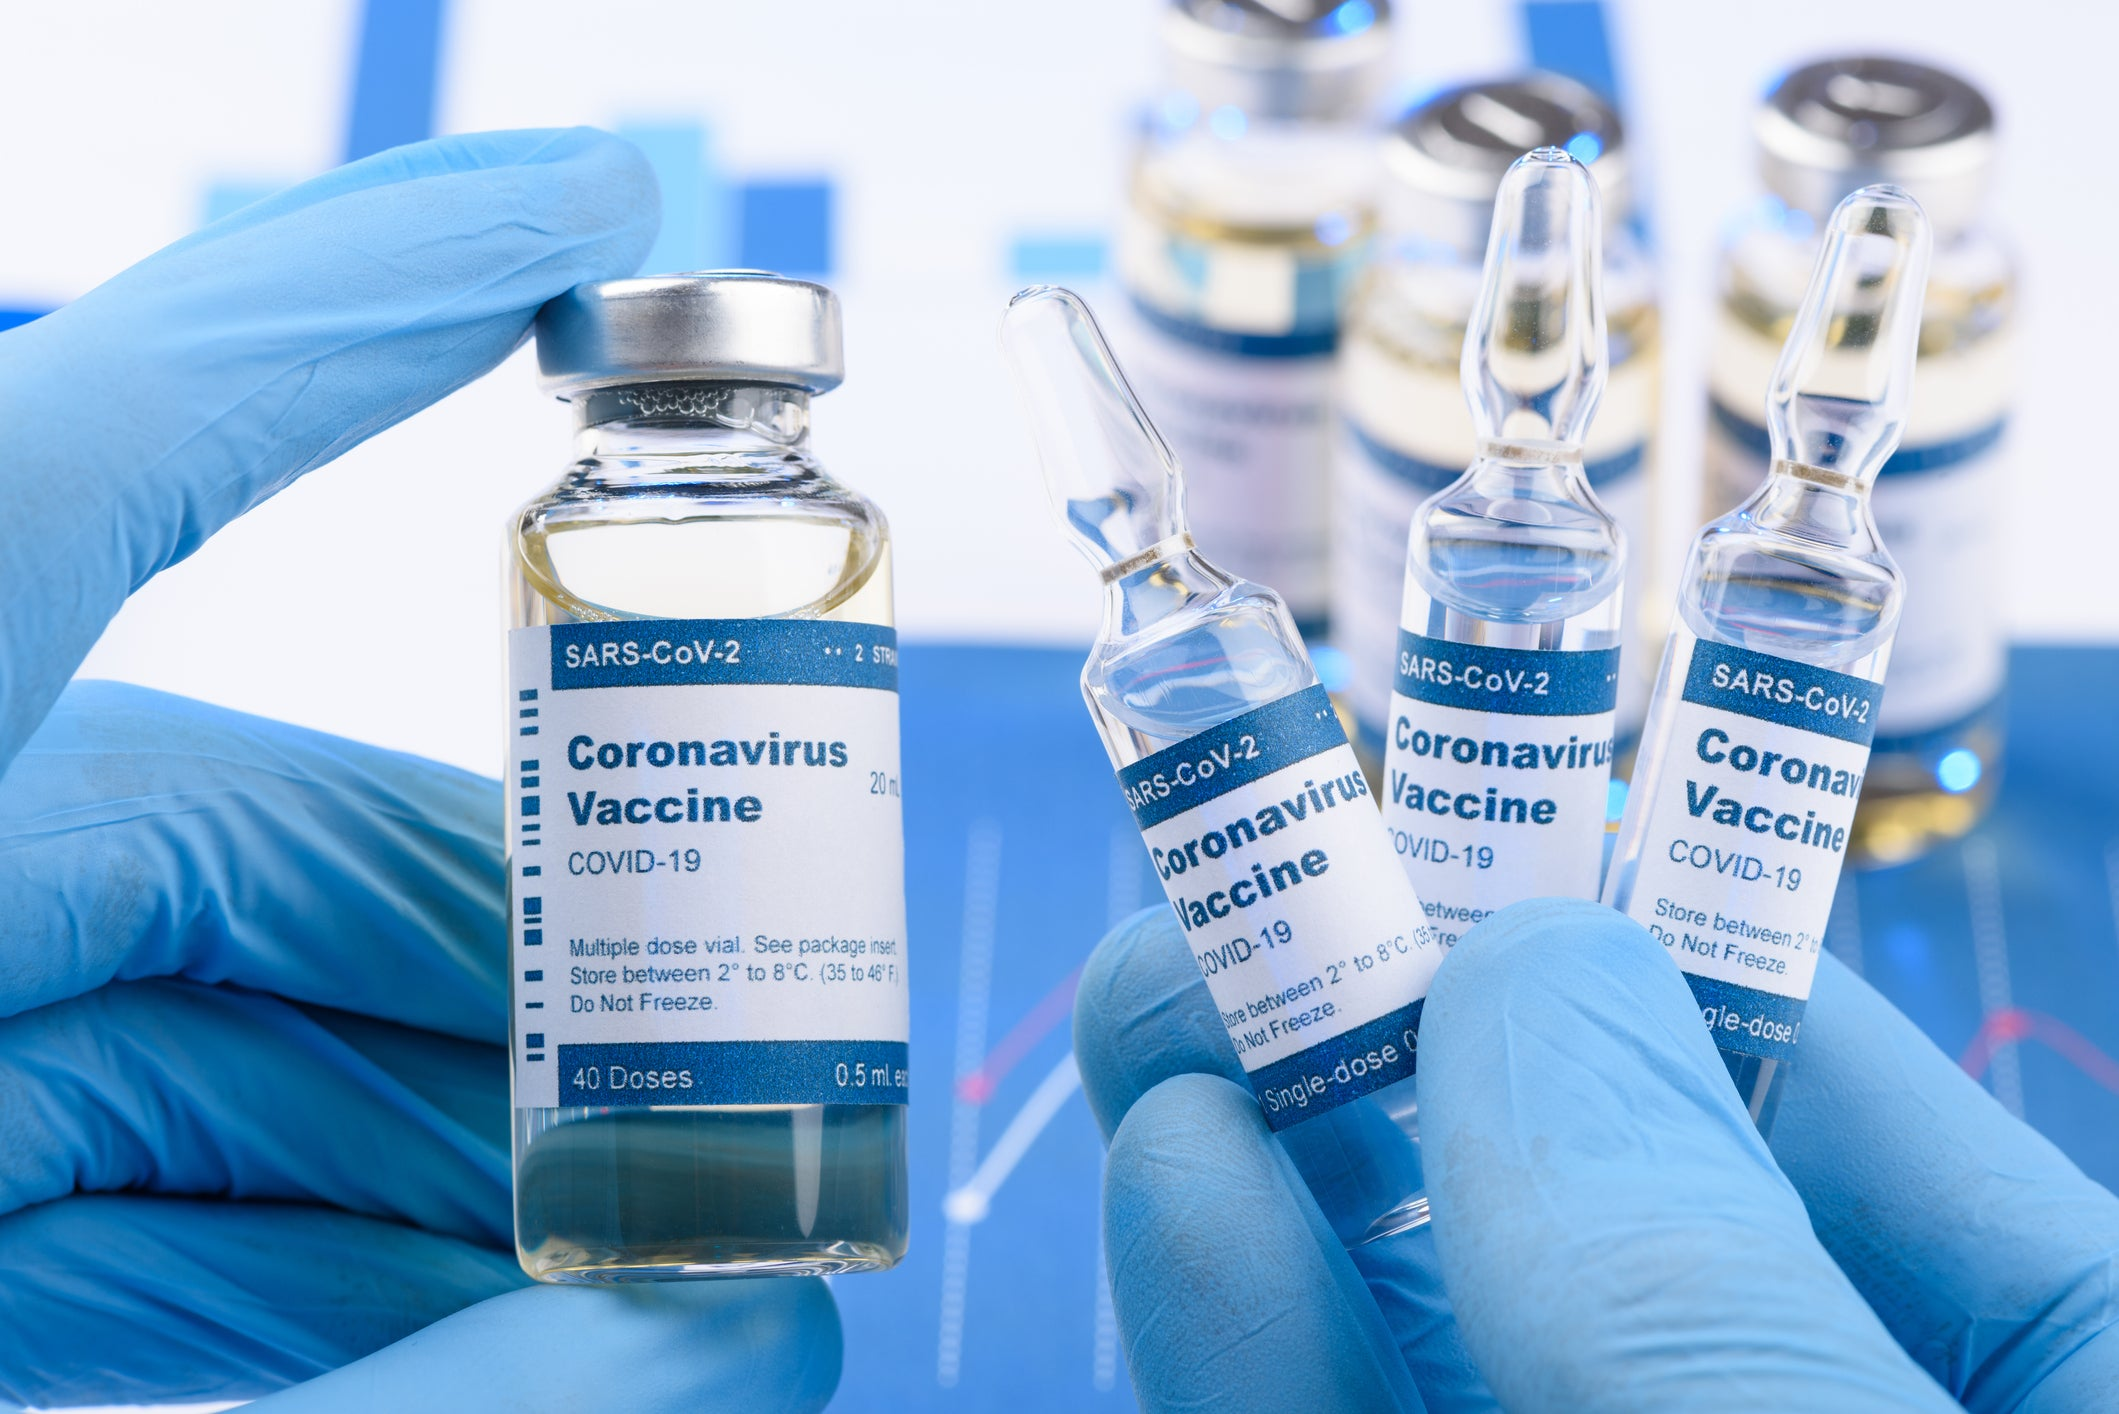 Where Things Stand in the Coronavirus Vaccine Race